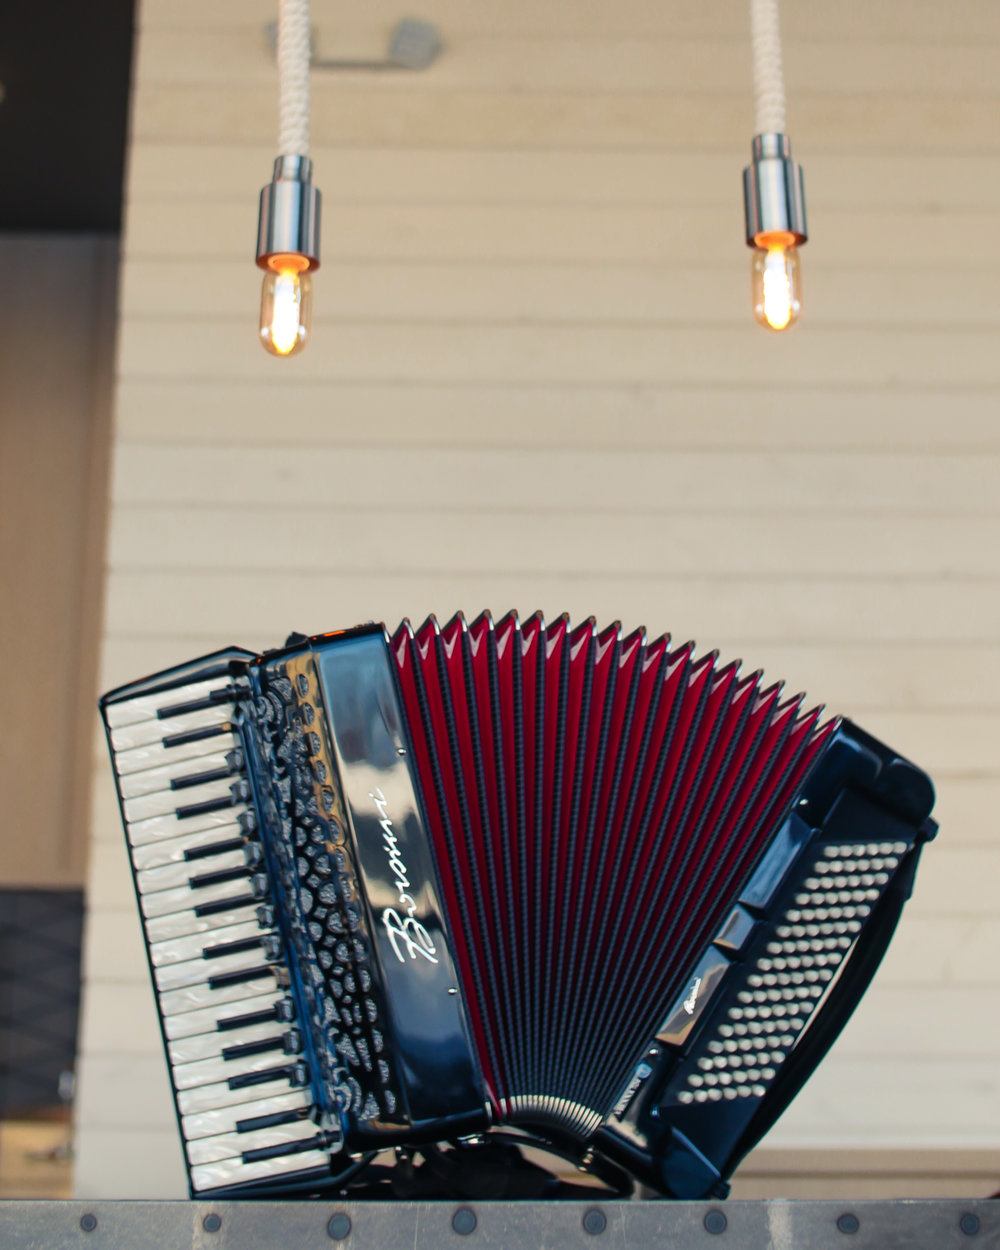 michael_schaeffer_accordion.jpg